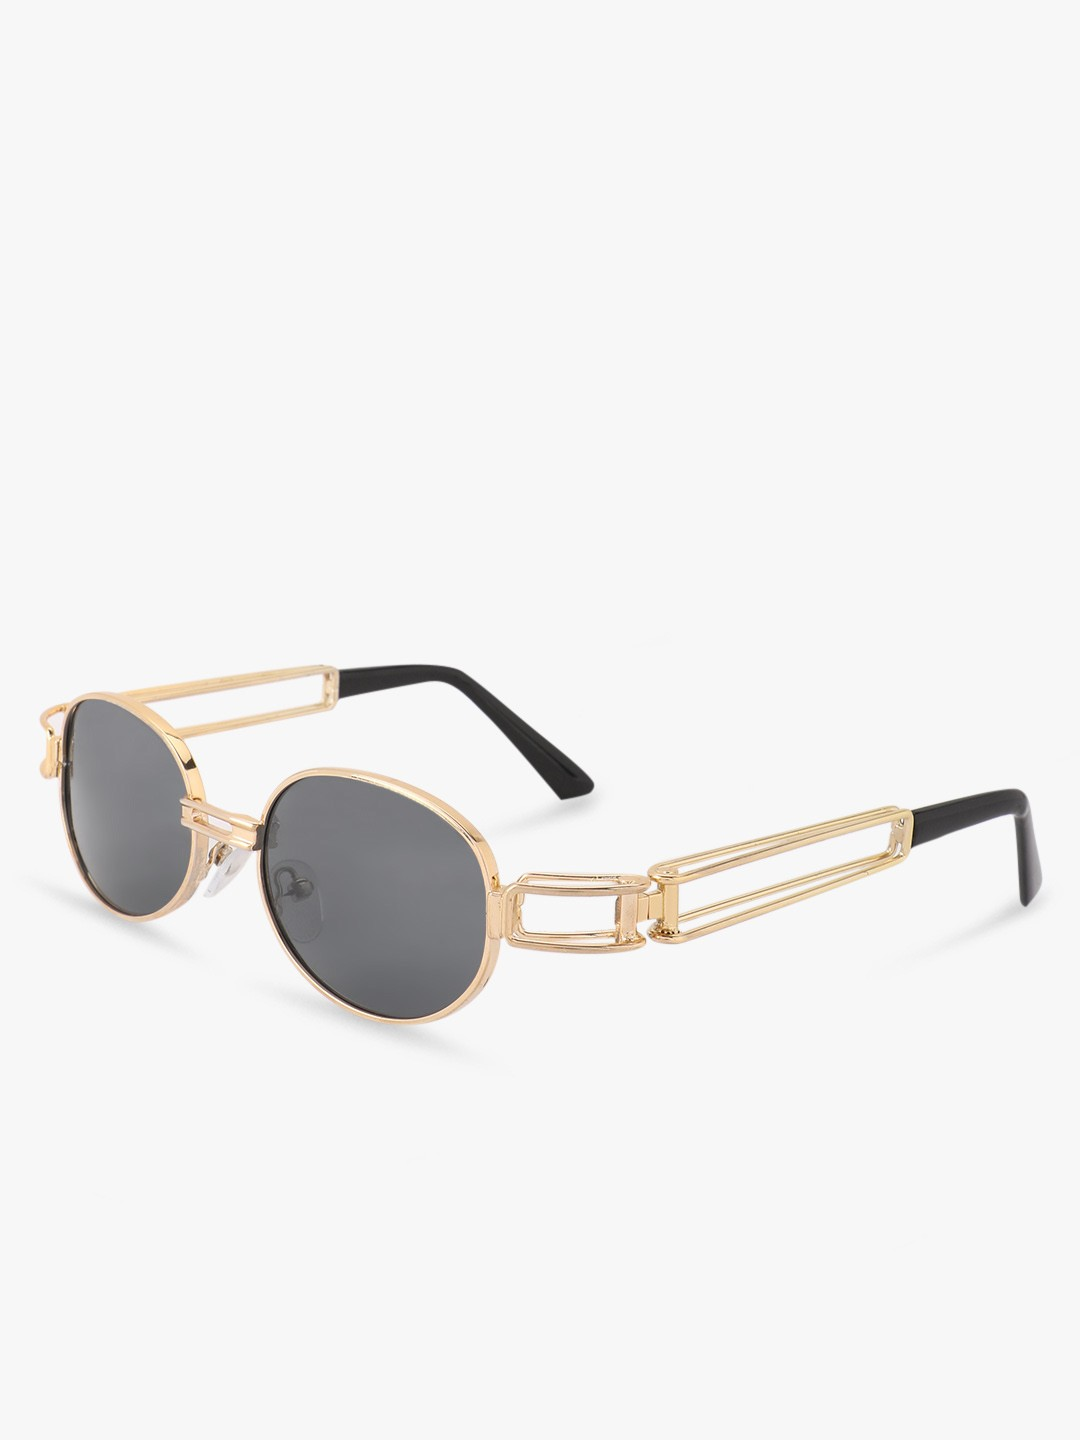 Pataaka Black Round Metallic Sunglasses 1